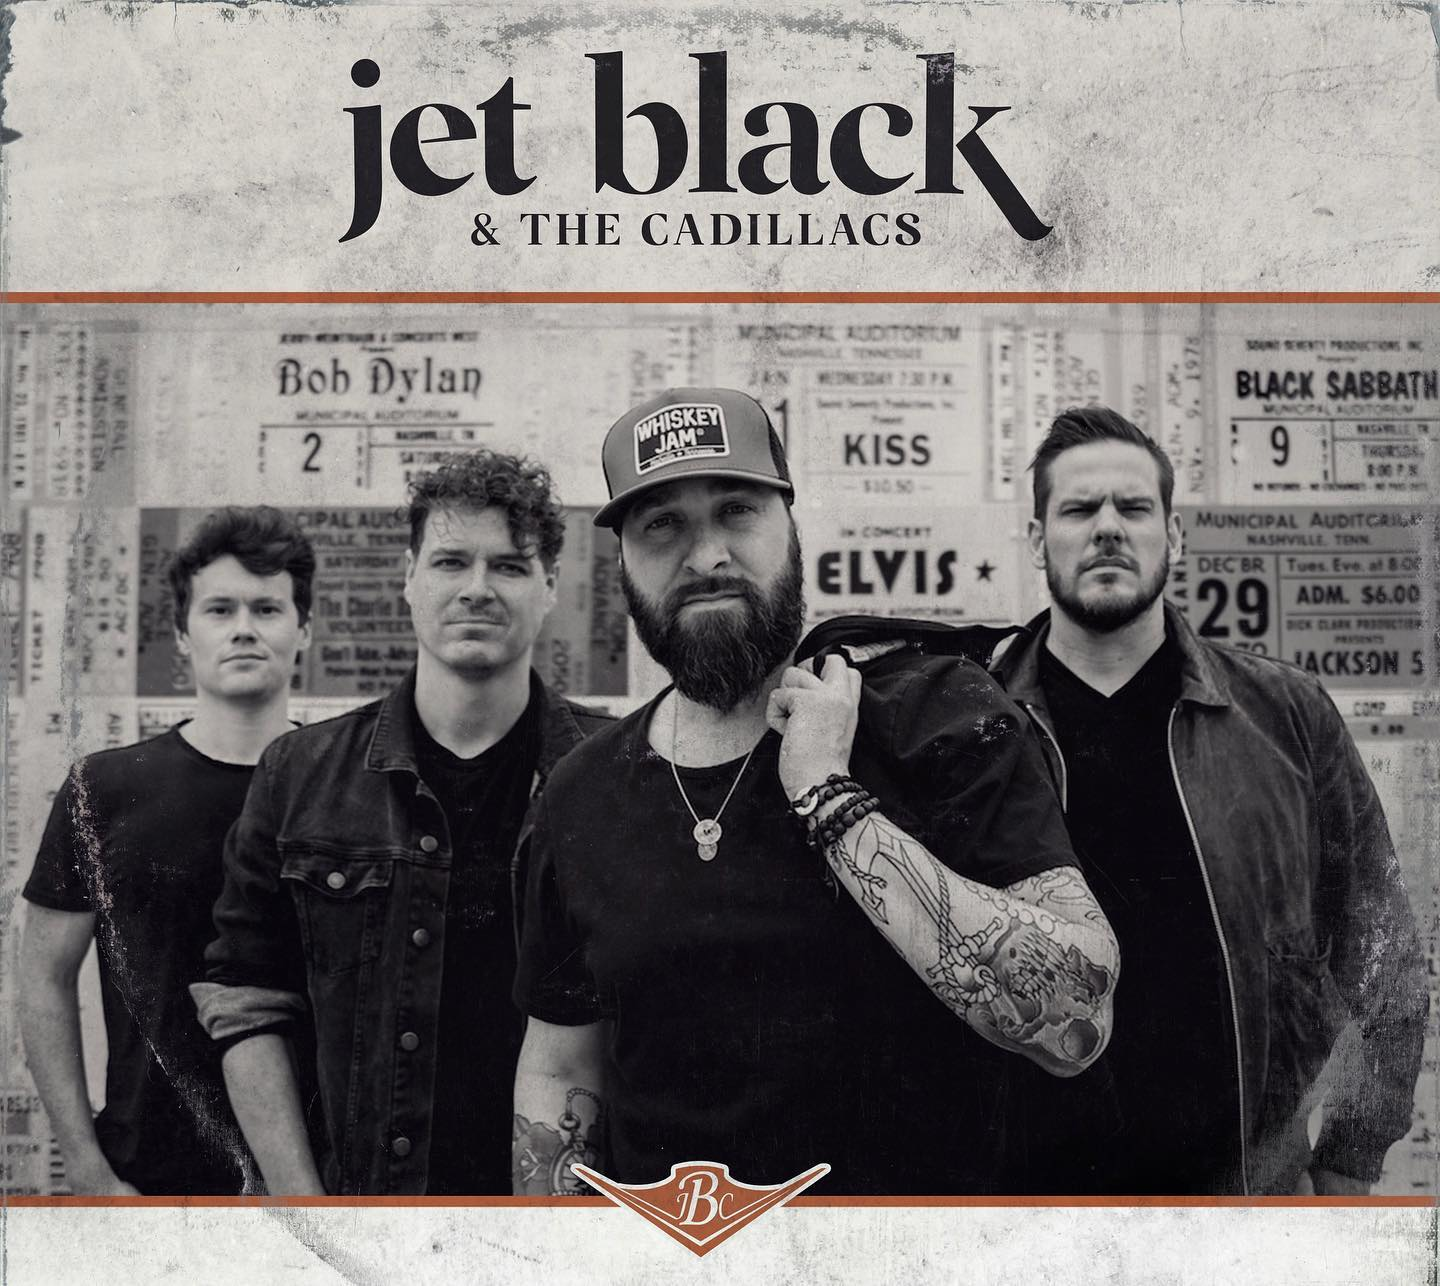 Jet Black and the Cadillacs